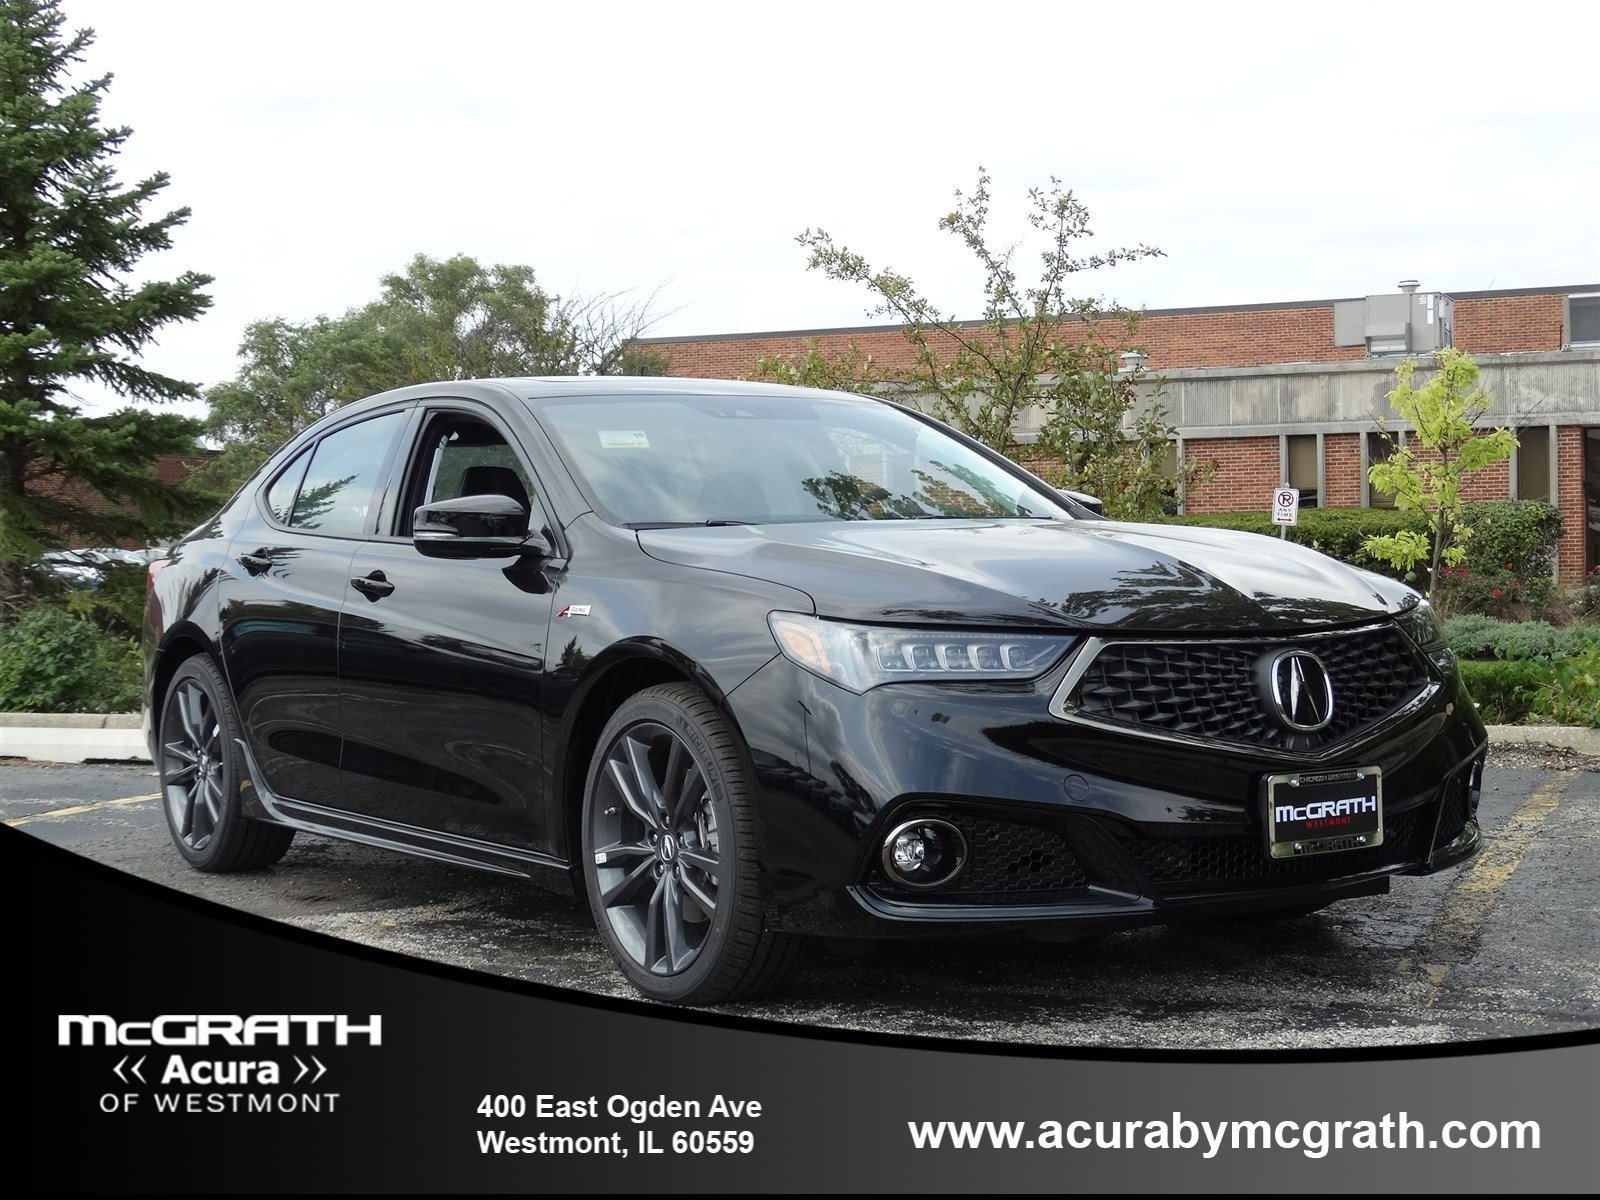 New 2019 Acura TLX 3 5 V 6 9 AT SH AWD with A SPEC 4dr Car in